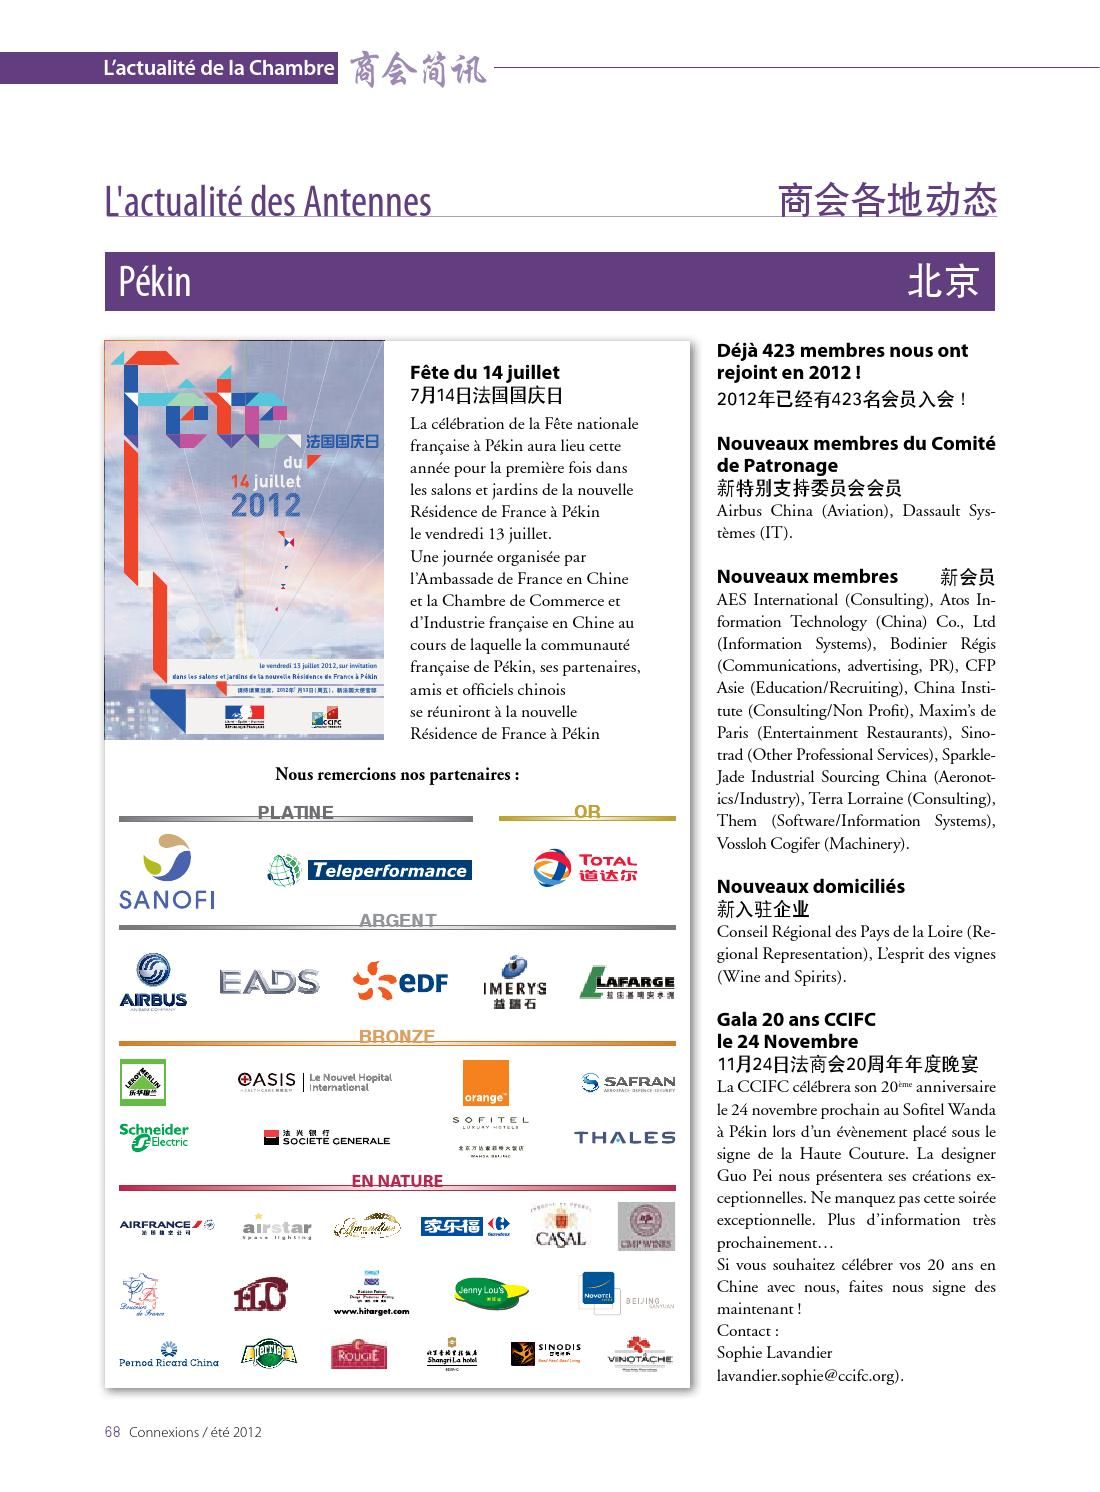 Connexions 62 by french chamber of commerce and industry for Chambre de commerce francaise en chine